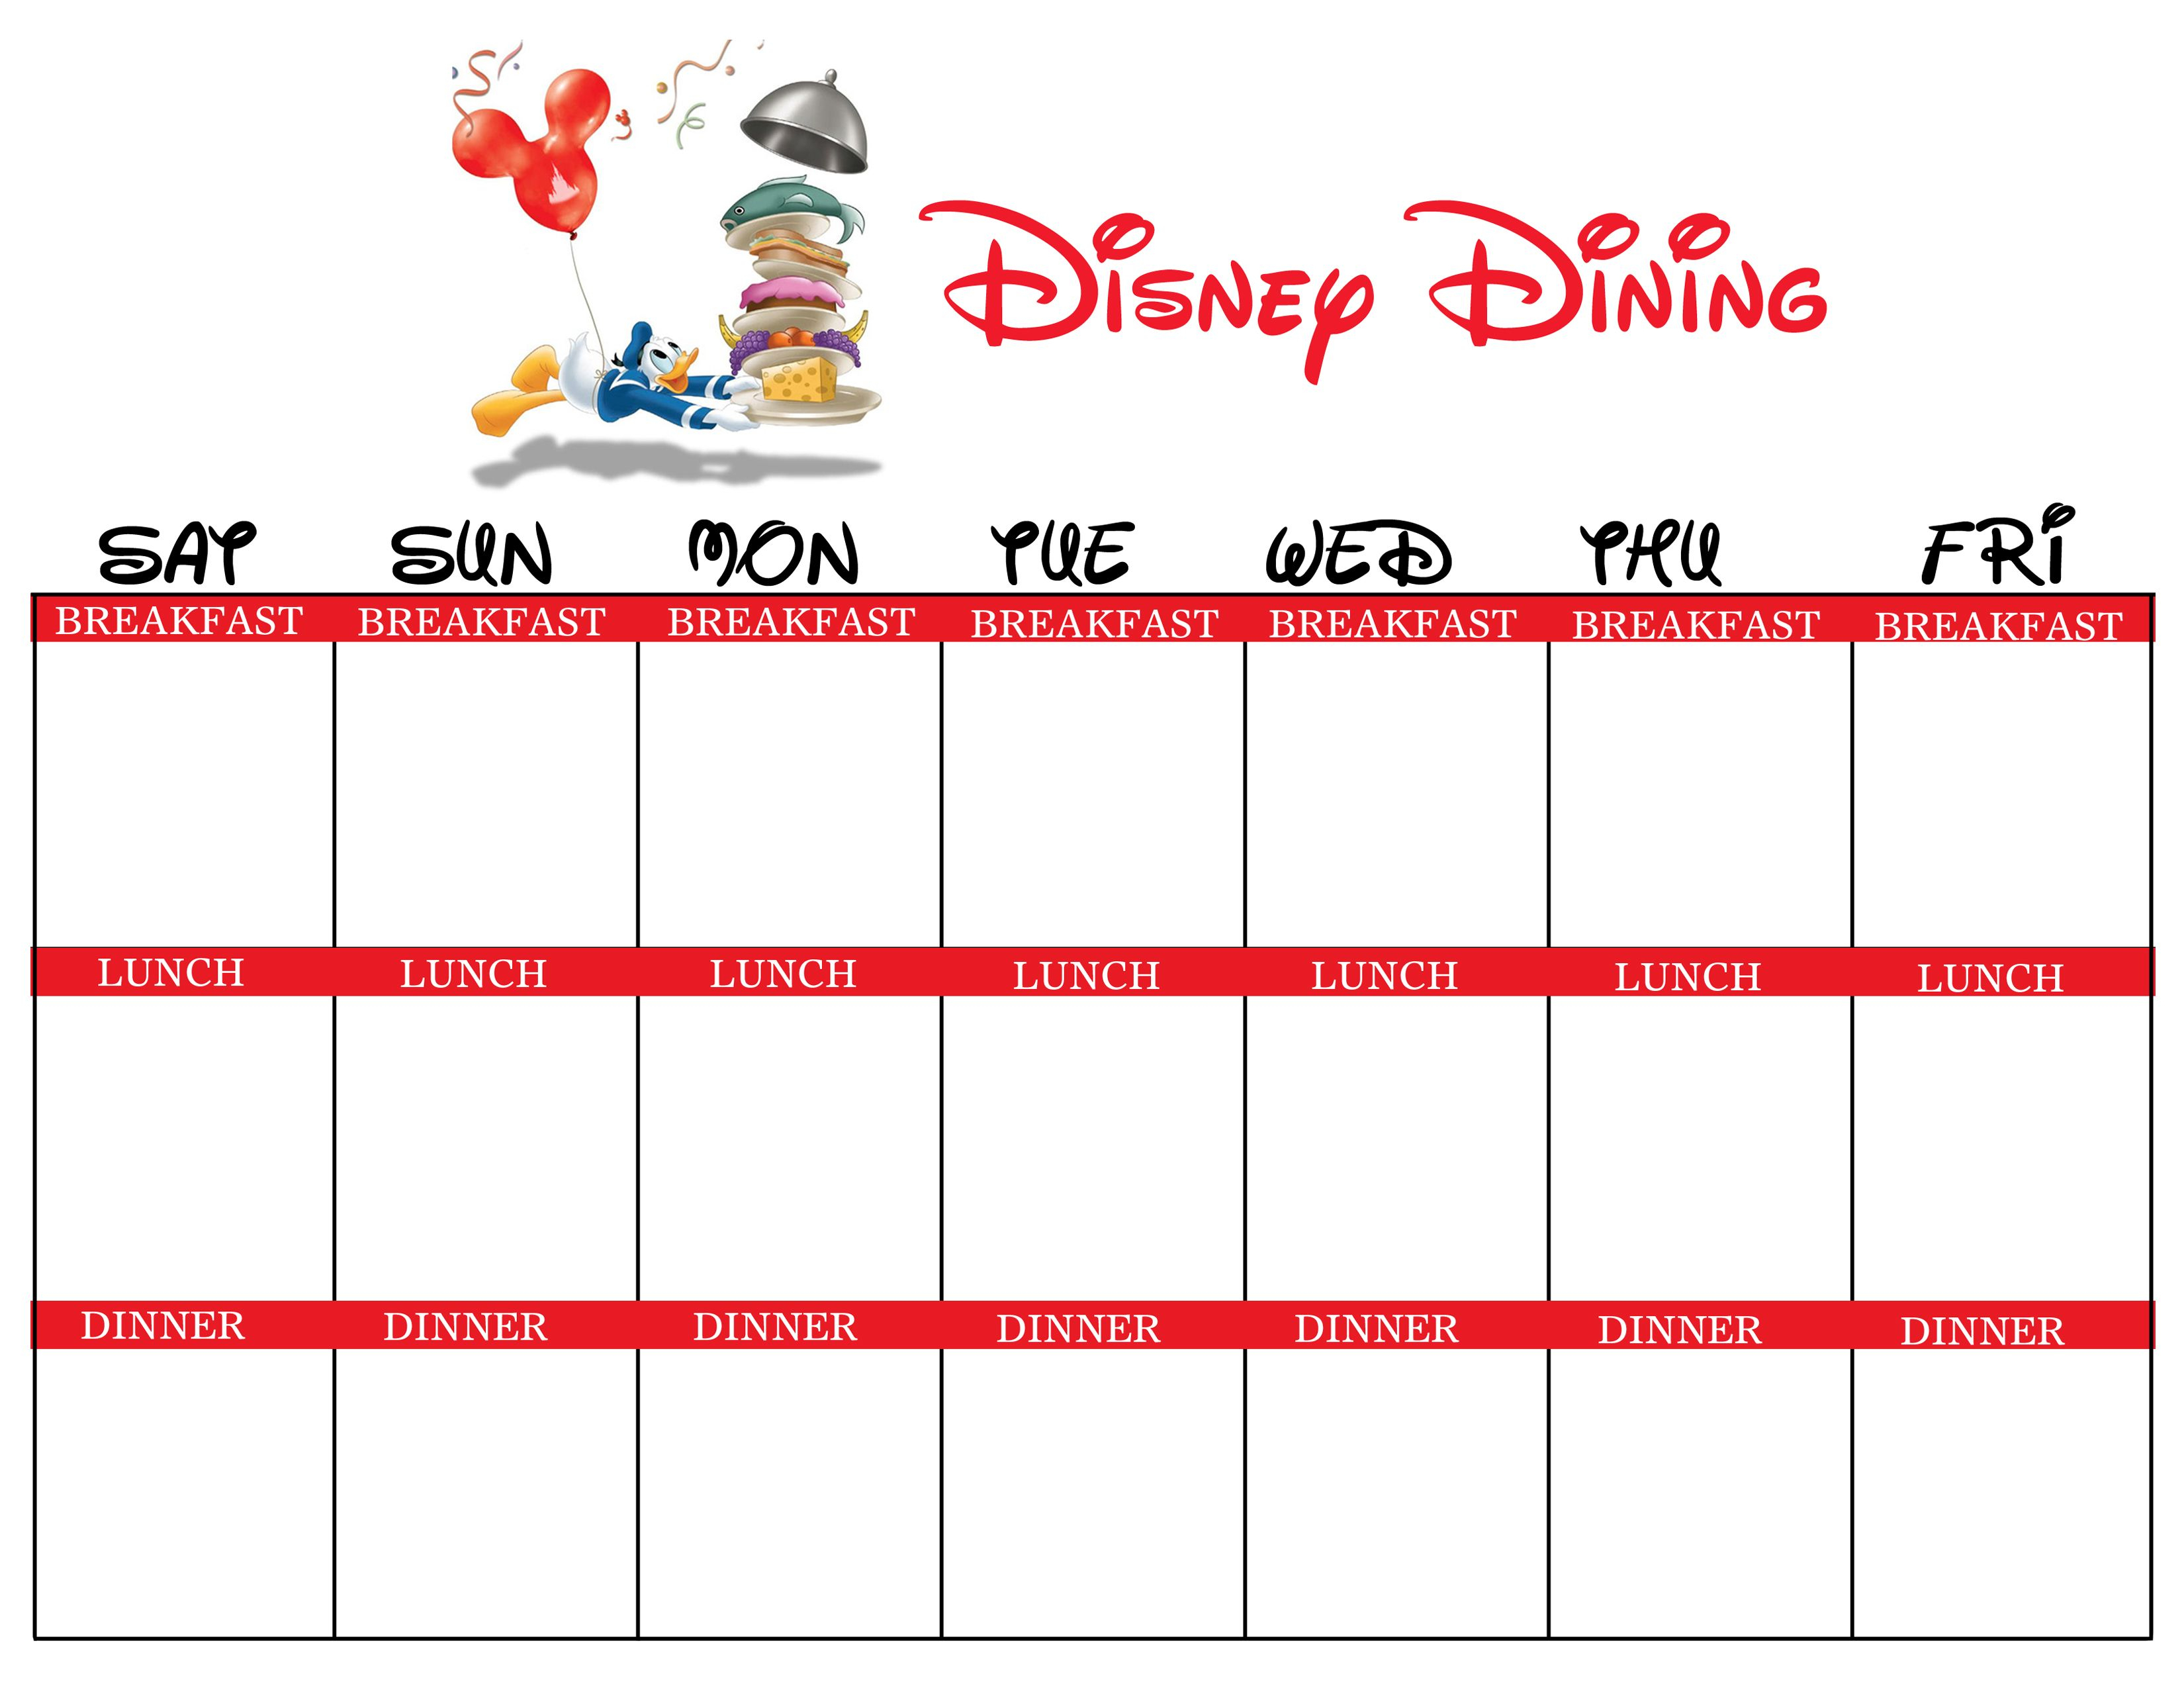 Disney Dining Planner - A Blank Version Of The Chart I Made